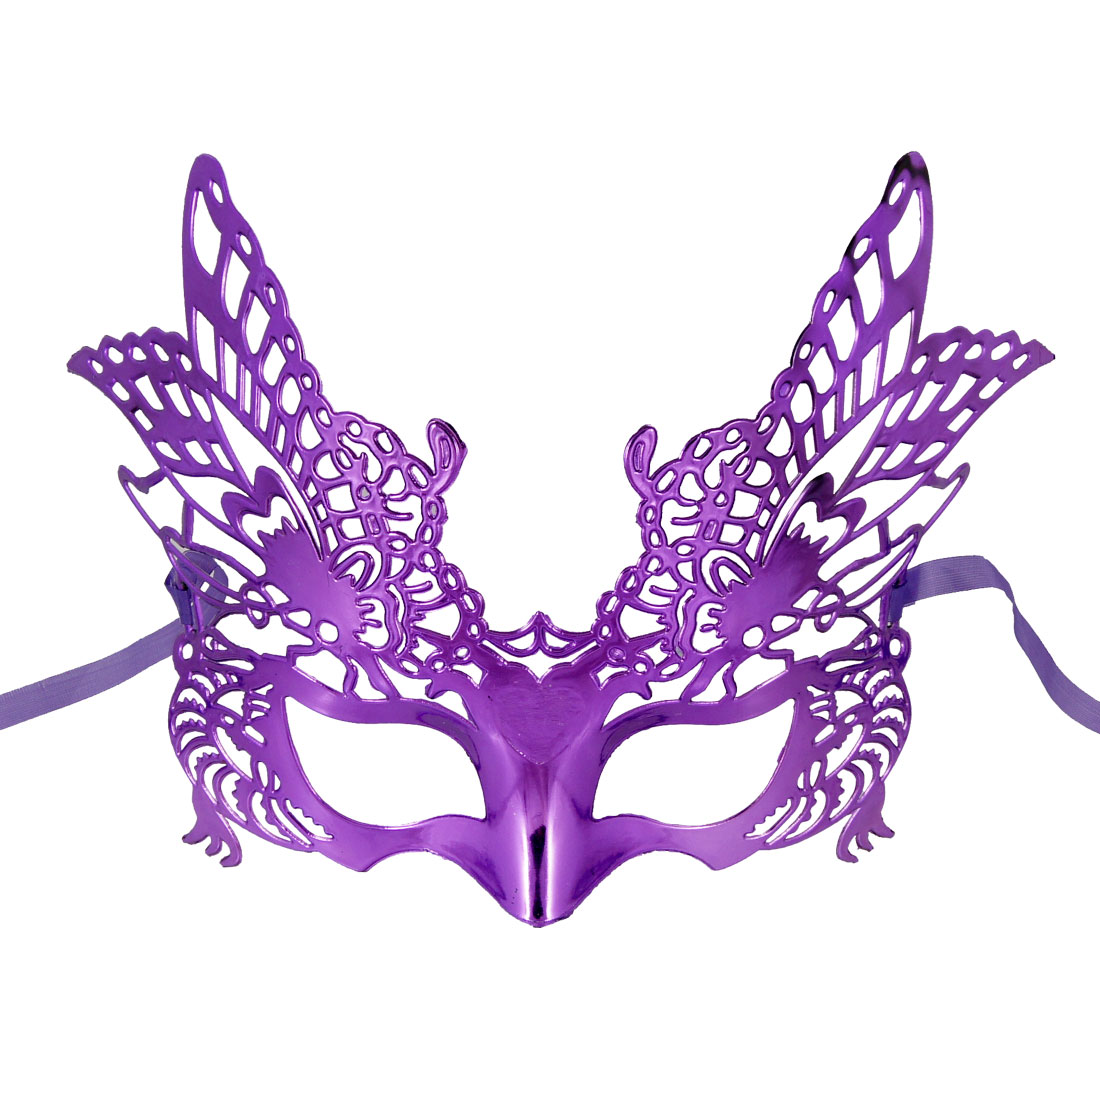 Fancy Masquerade Mask Clipart-Fancy masquerade mask clipart-1